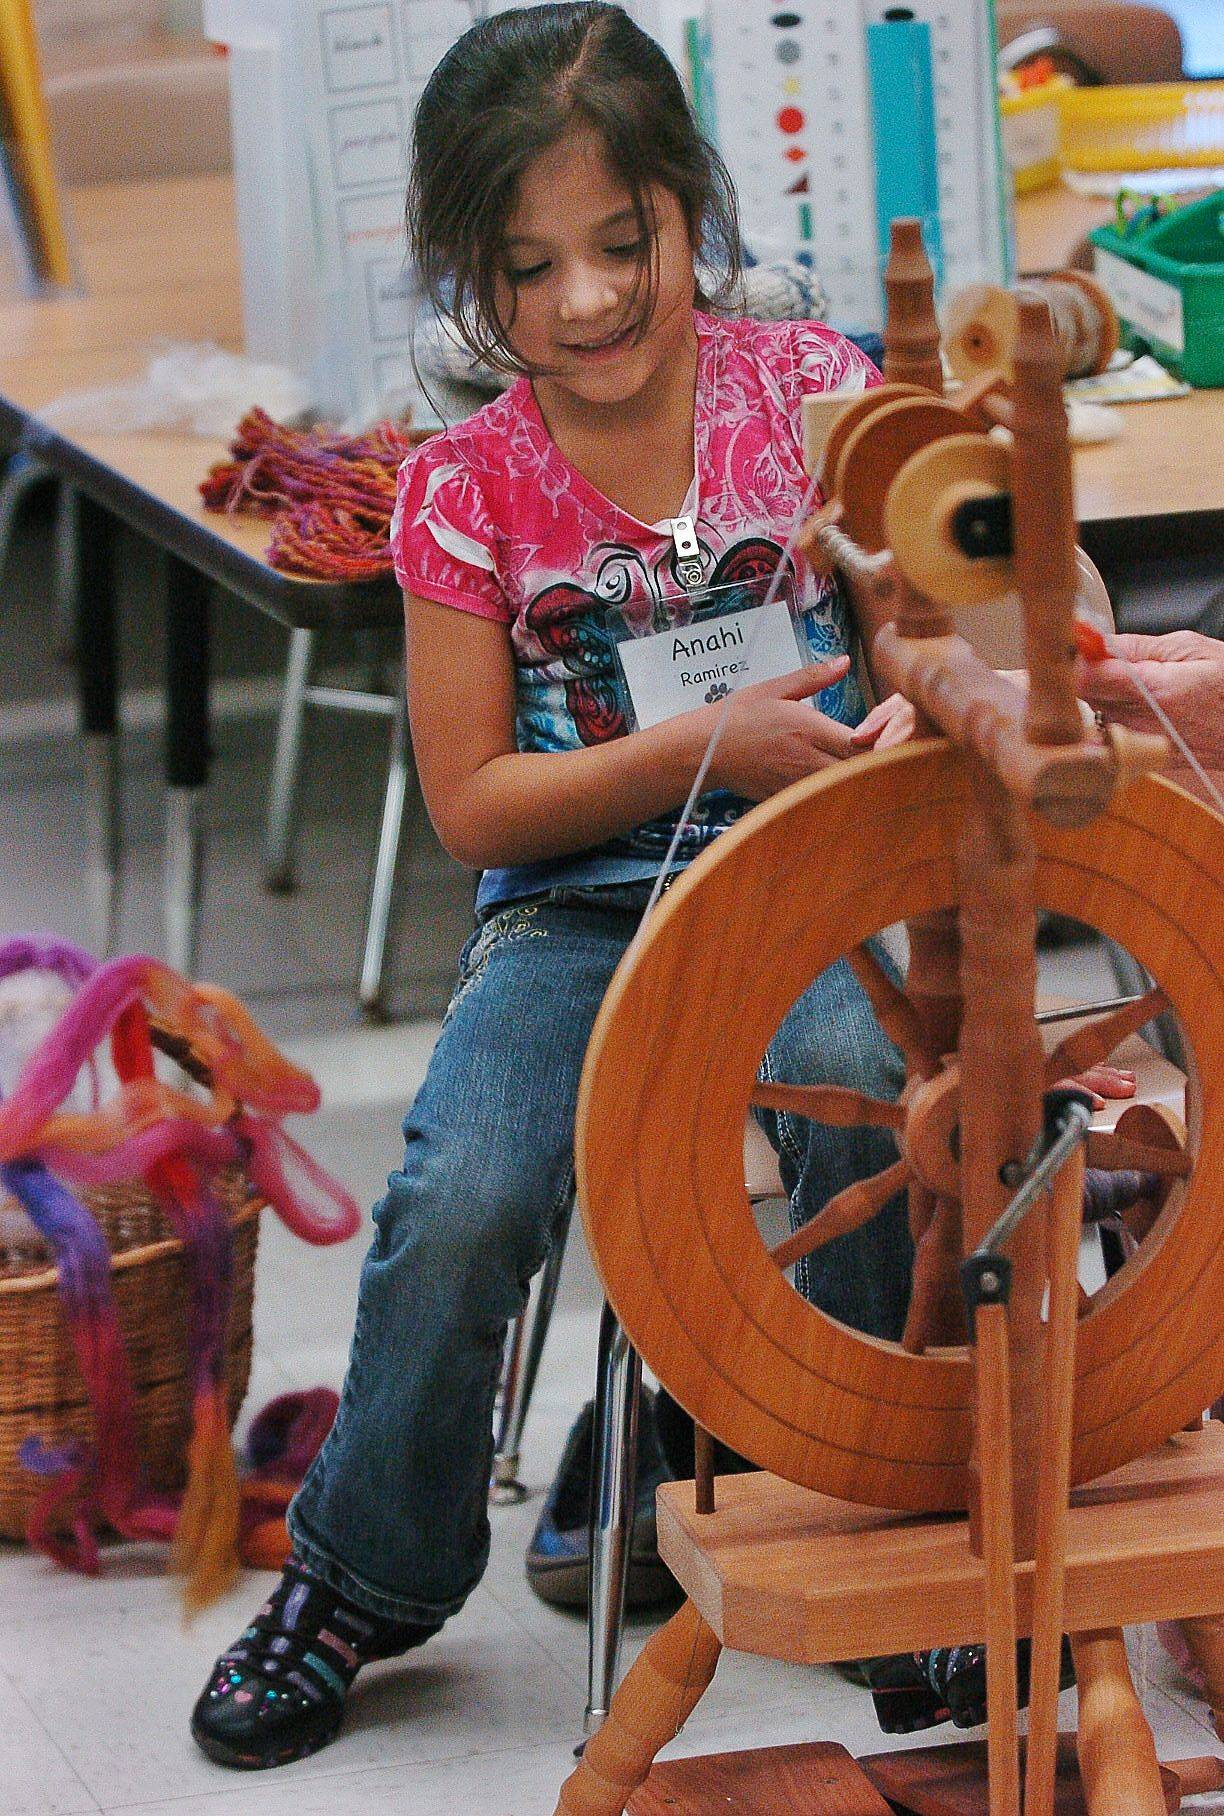 Woodland Primary School kindergartner Anahi Ramirez tries out the spinning wheel of presenter Allison Ashley, who was visiting Woodland to demonstrate the art of spinning yarn from wool.